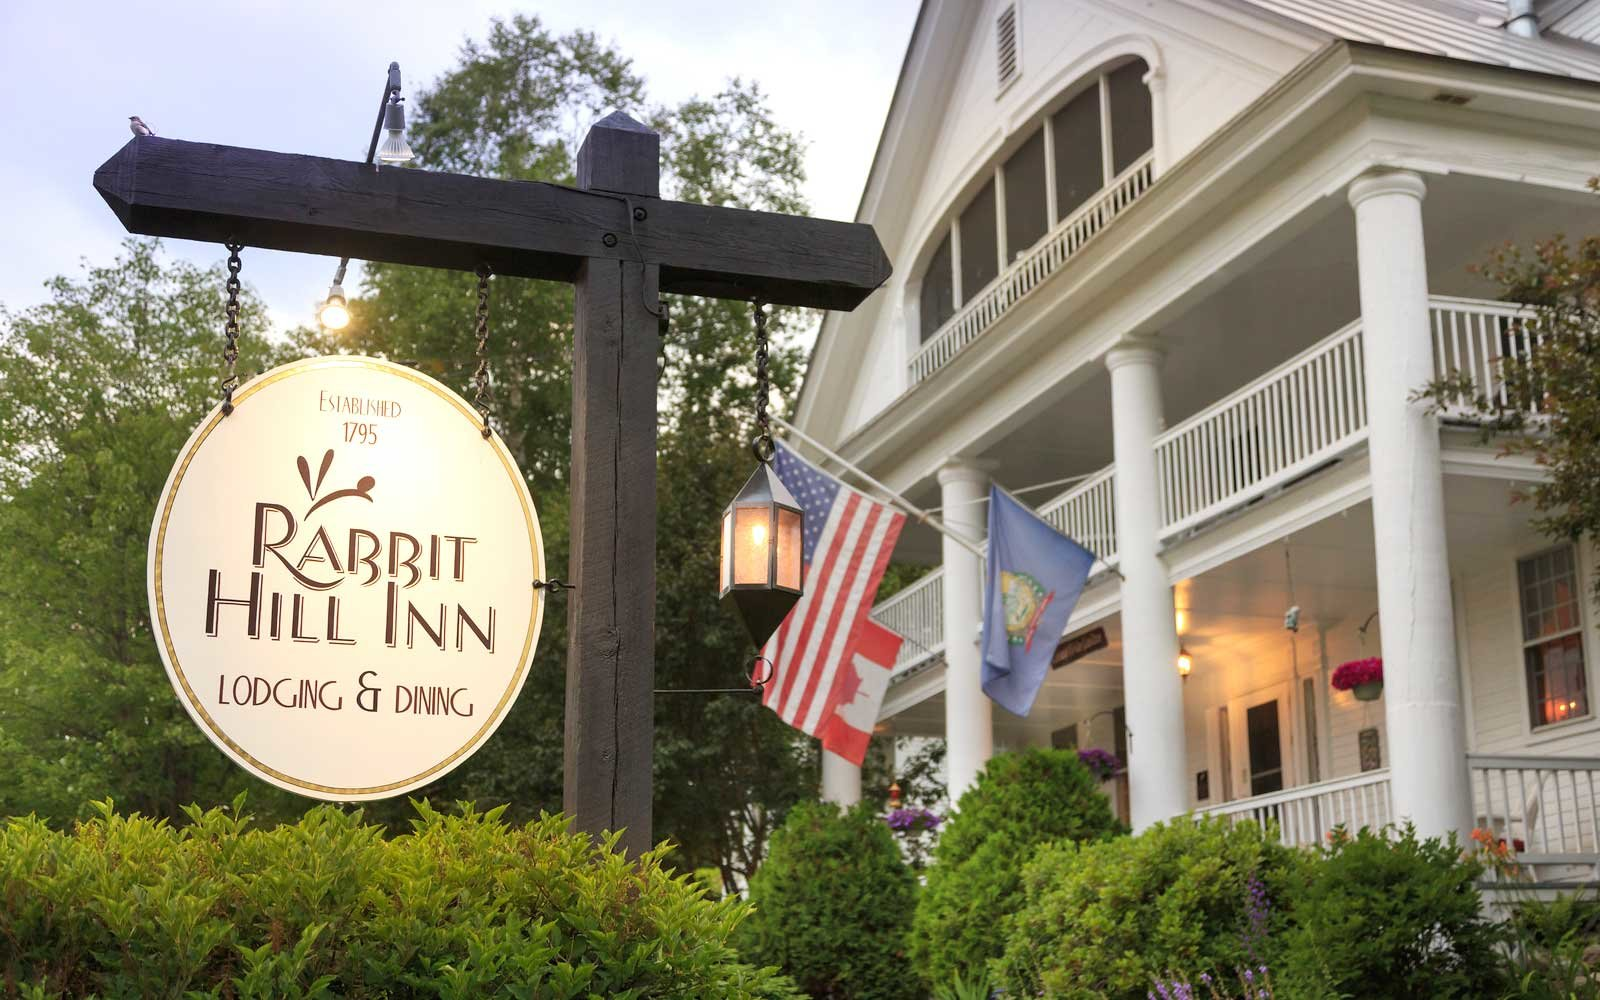 Exterior of Rabbit Hill Inn